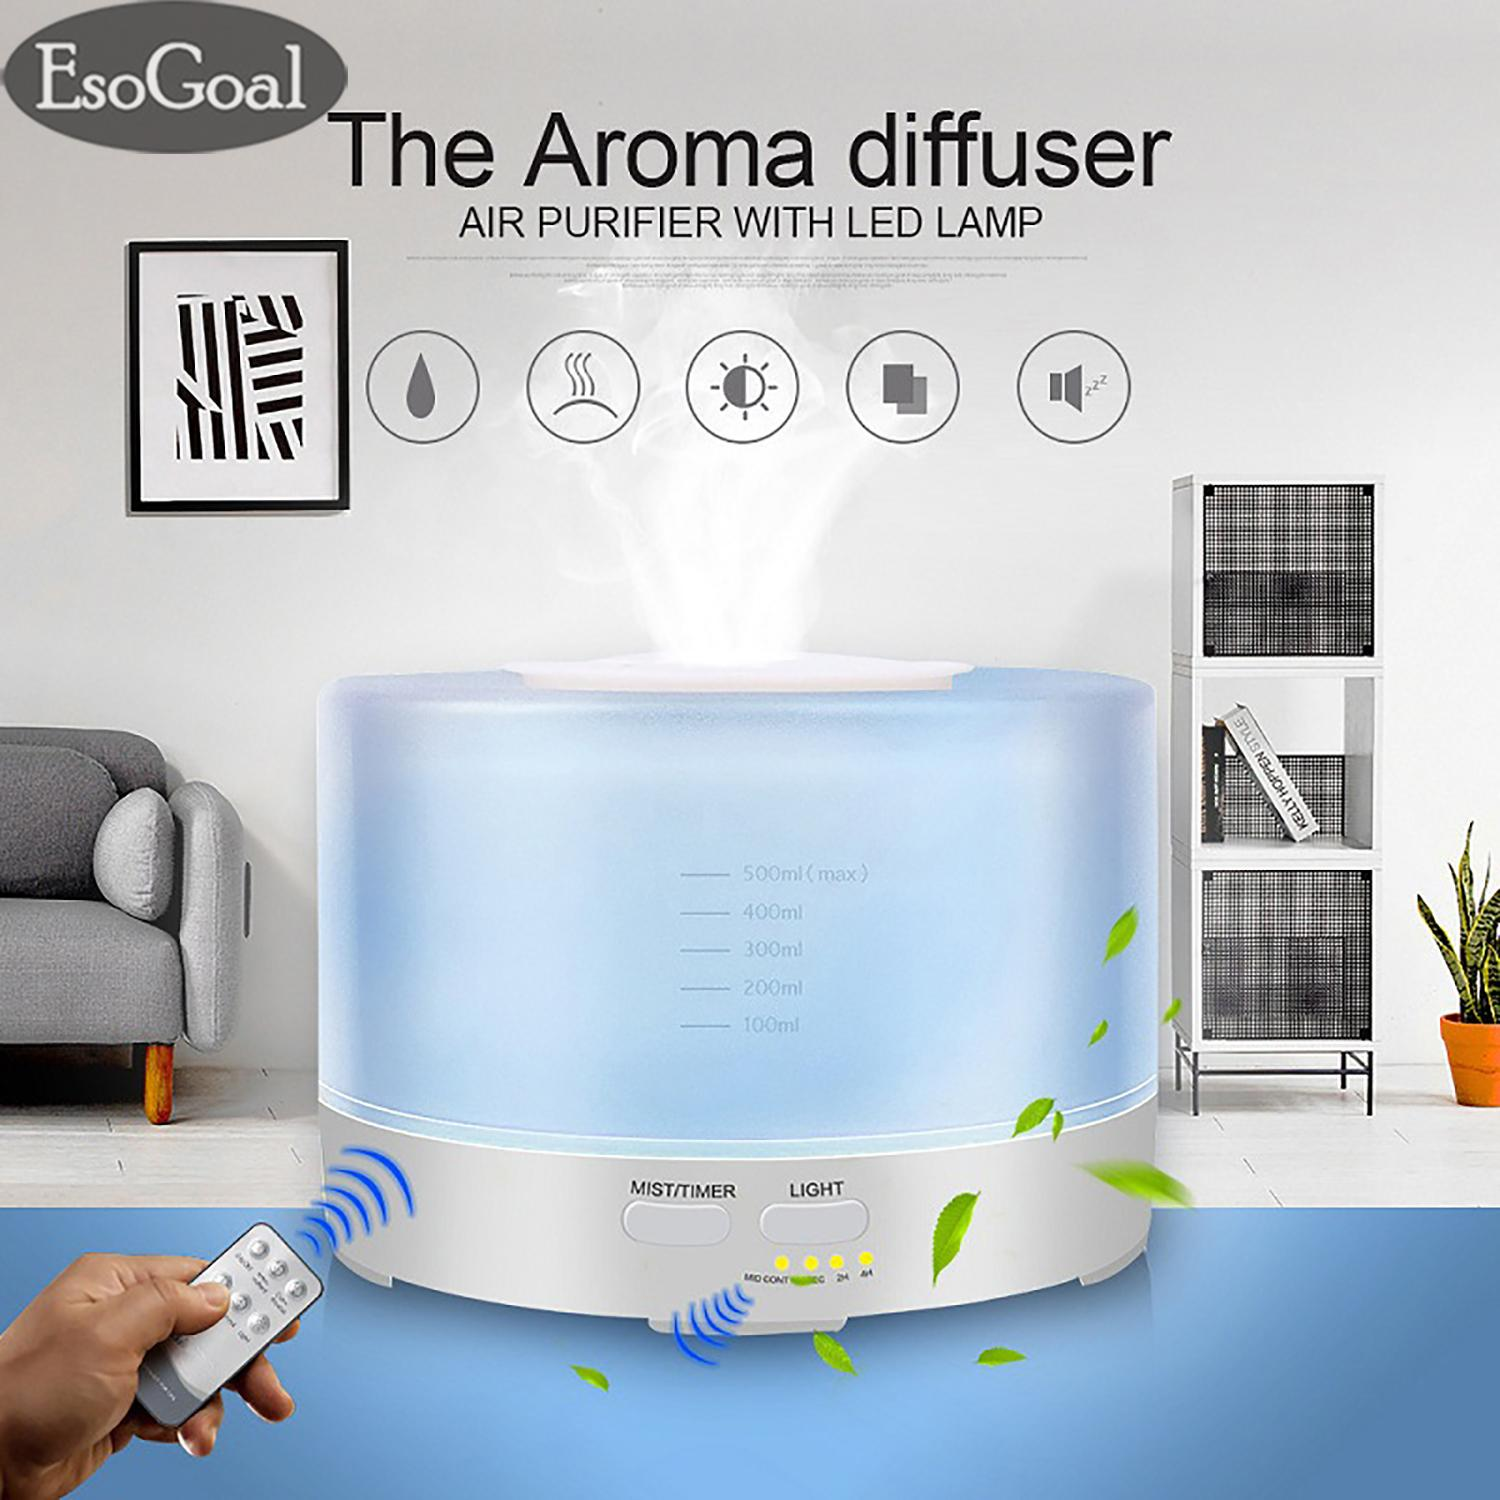 Esogoal Aroma Diffuser Inspire Air Humidifiers Ultrasonic Aromatherapy Essential Oil Diffuser Wooden Air Purifier Cool Mist Quiet Design For Home, Office, Bedroom, Yoga, Spa(500ml) By Esogoal.